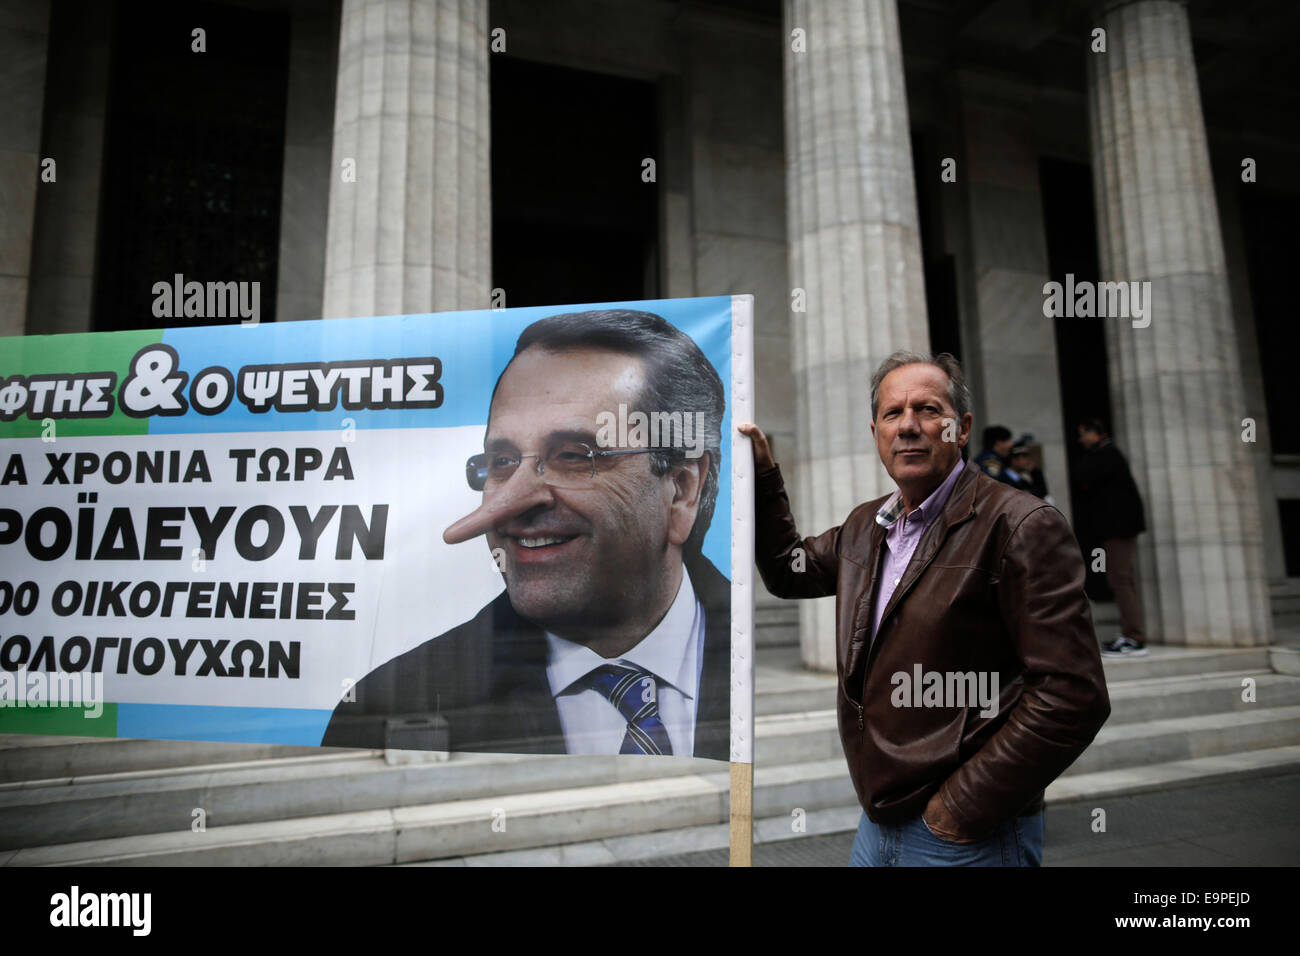 Thessaloniki, Greece. 31st Oct, 2014. An elderly small bondholder holds a banner with a caricature of Greece's - Stock Image